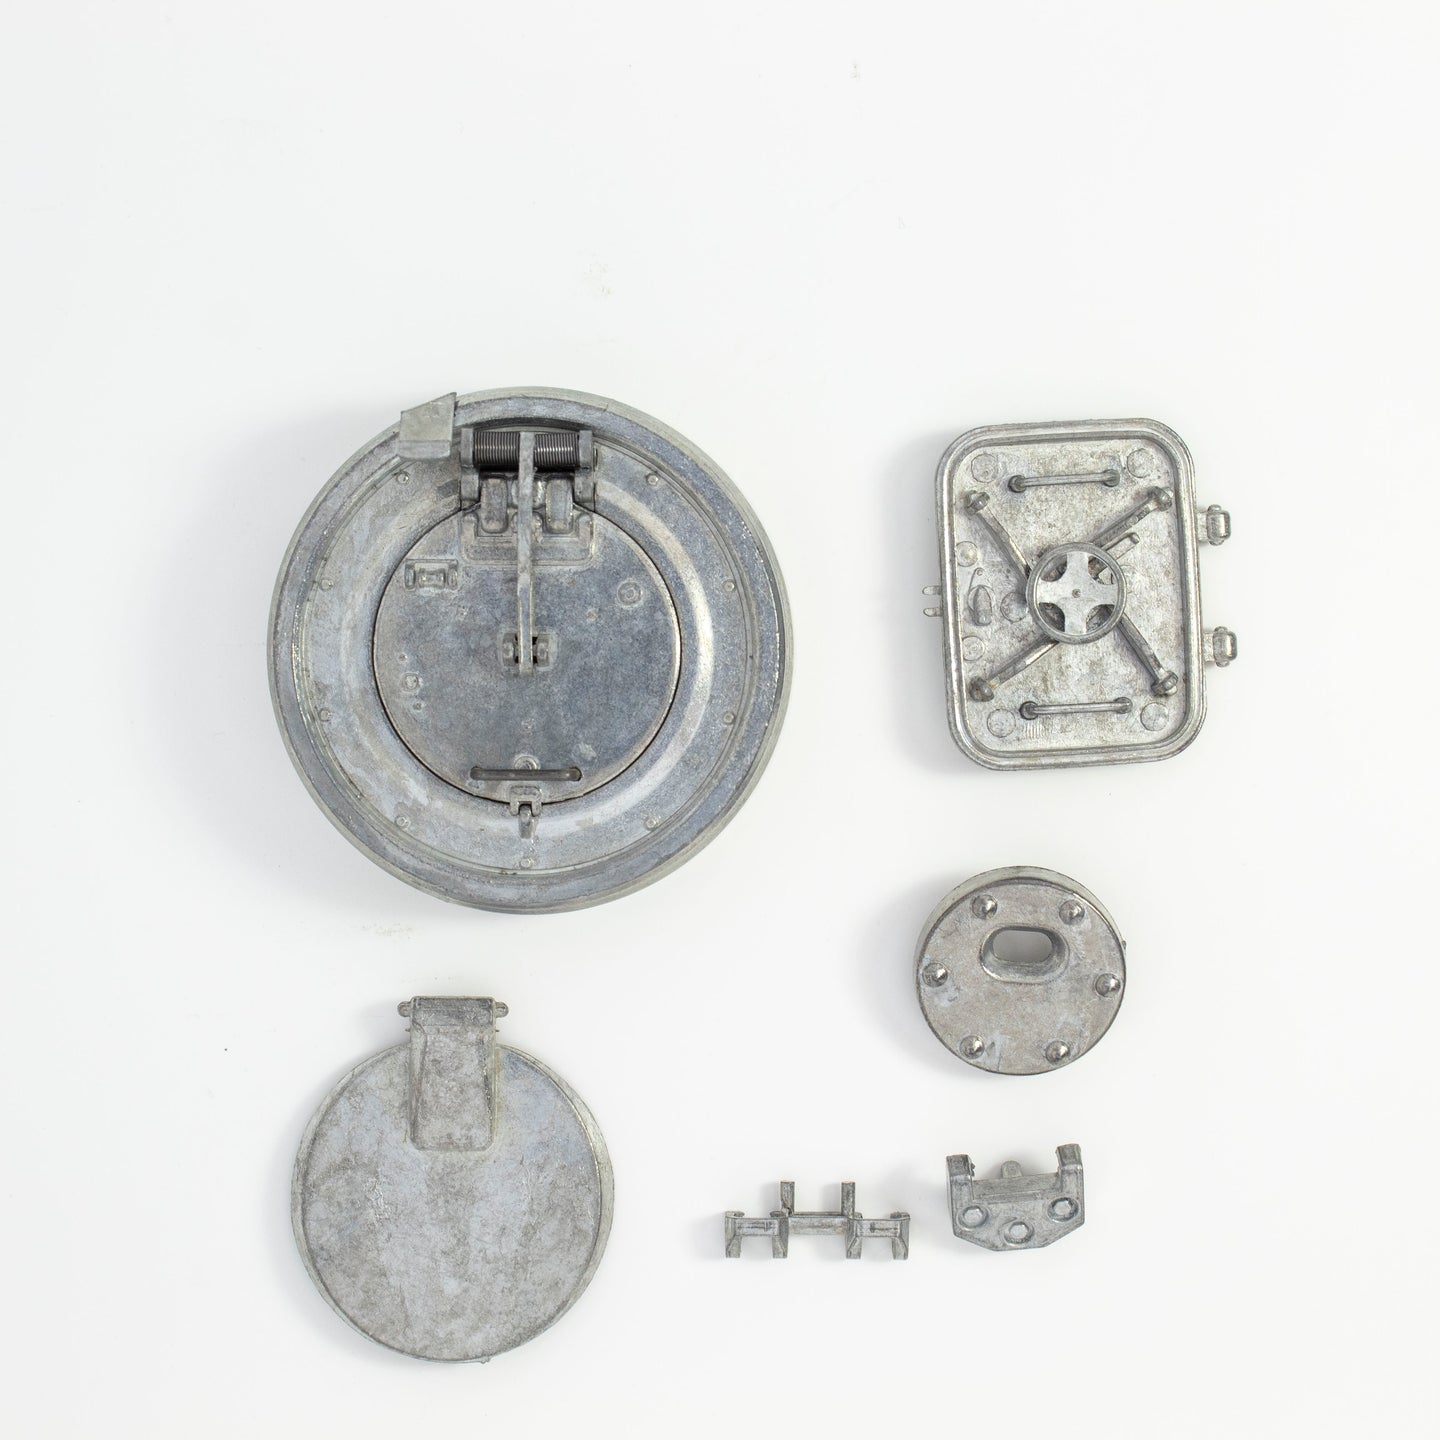 Tiger 1 Early Metal Turret Fittings (Cupola, Pistol Port, Escape Hatch, & Loaders Hatch)